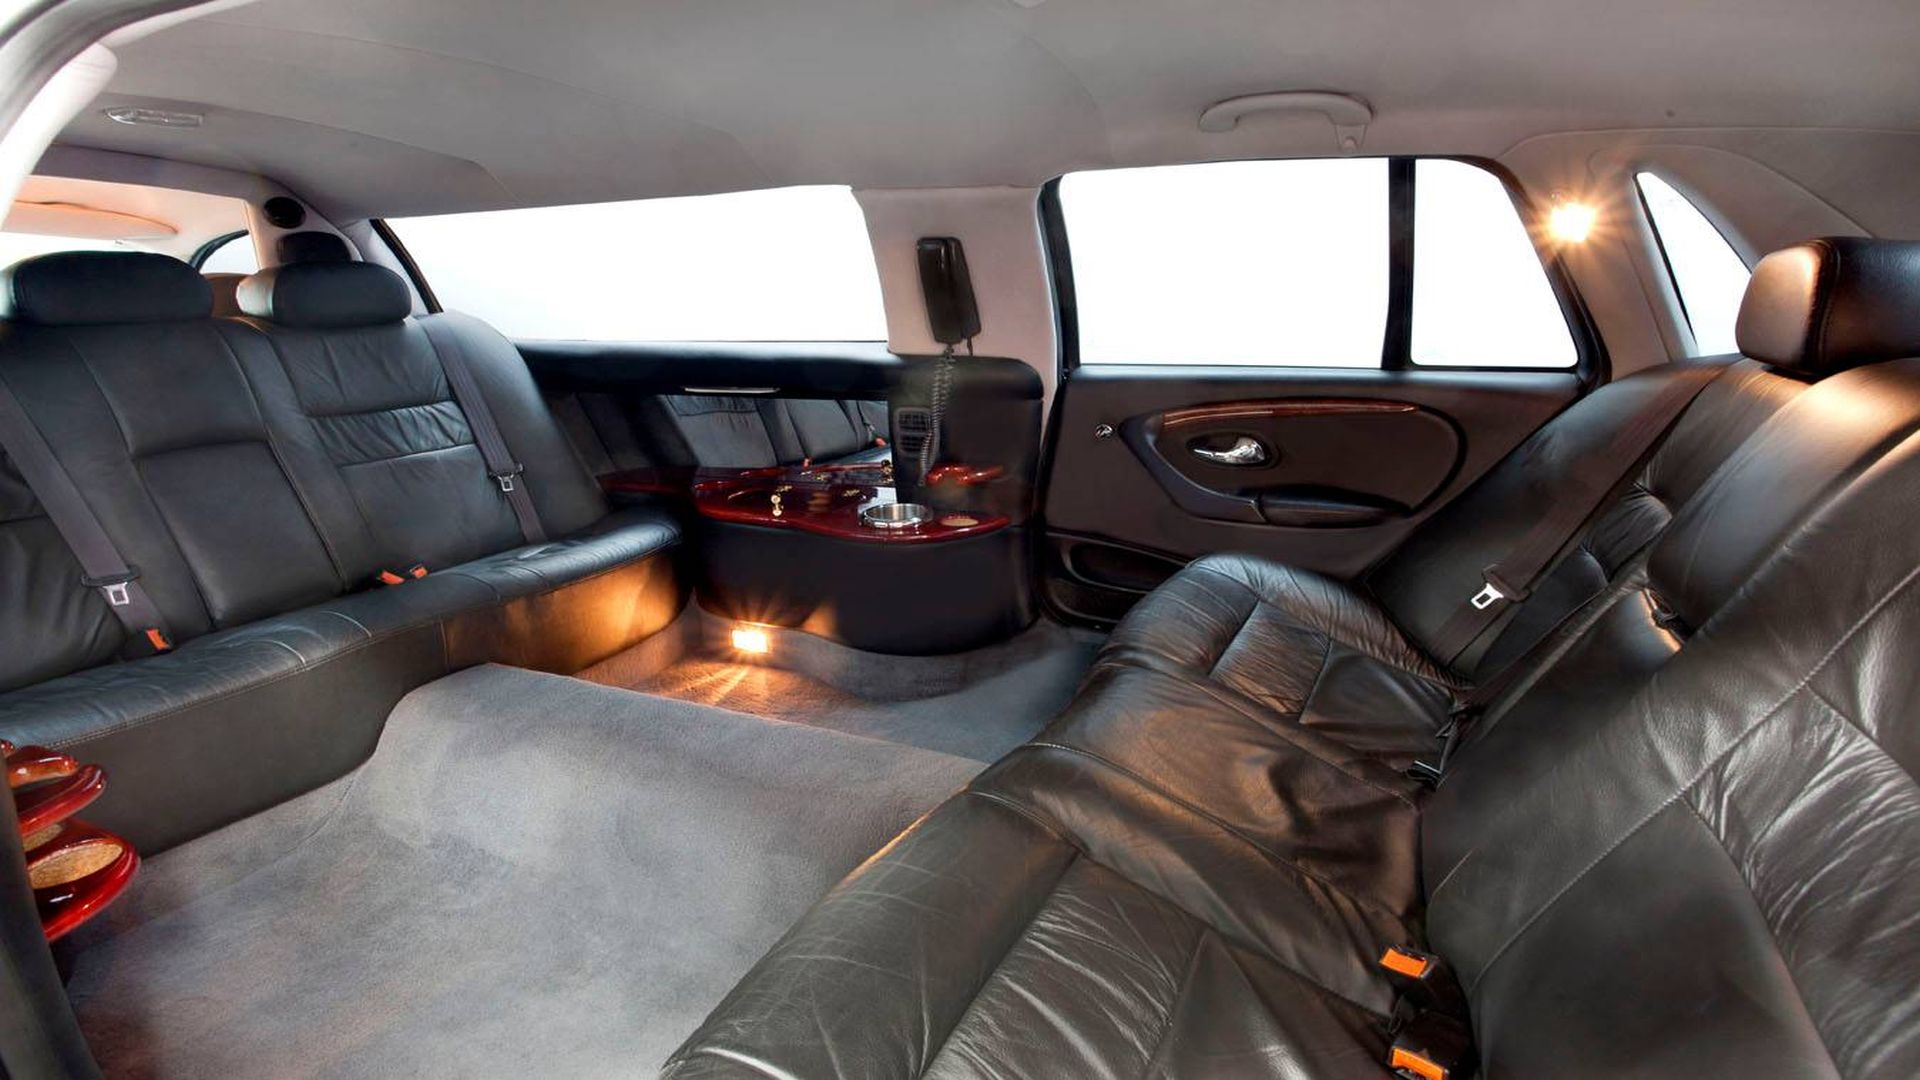 7 Seater Stretch Ford LTD Interior